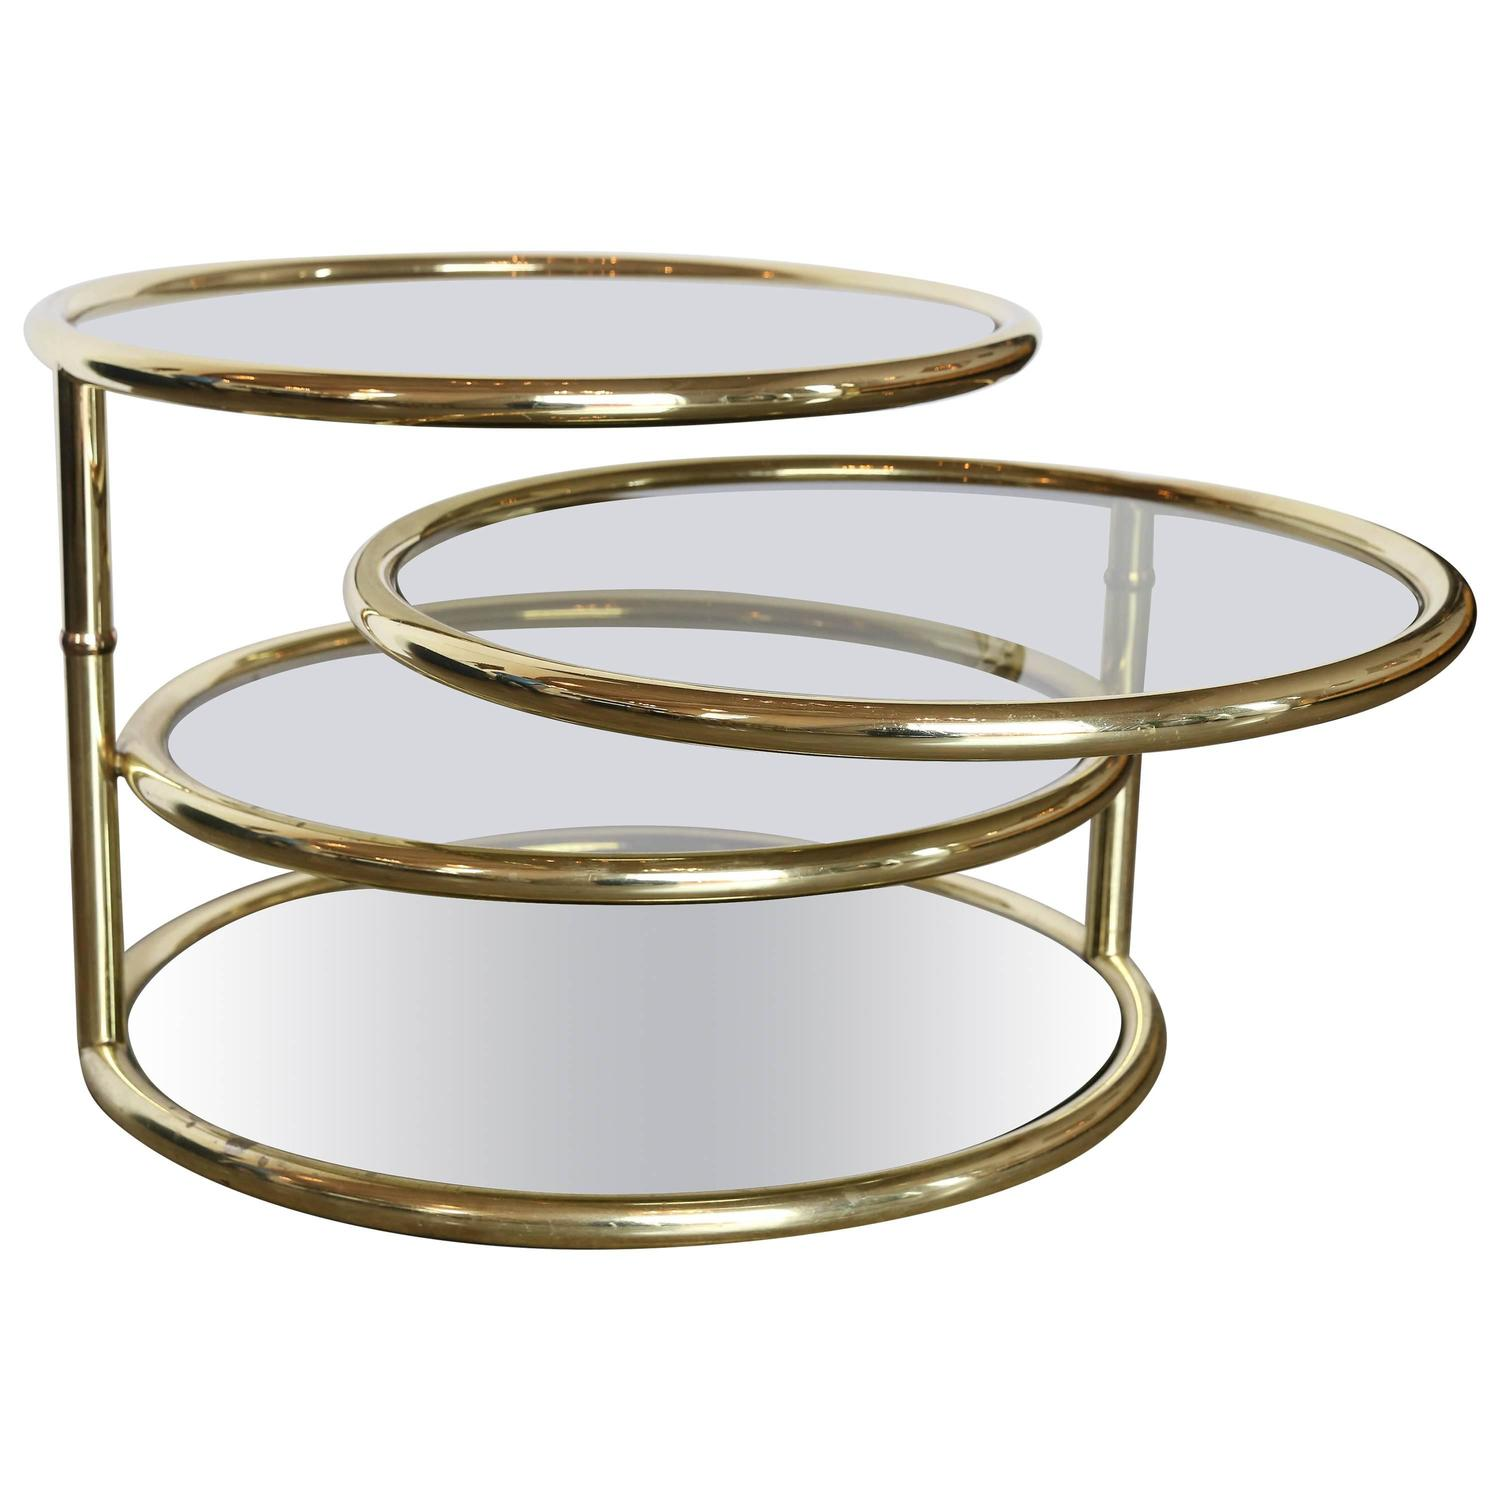 Milo Baughman Four Tier Smoke Glass And Brass Swivel Cocktail Or Side Table At 1stdibs